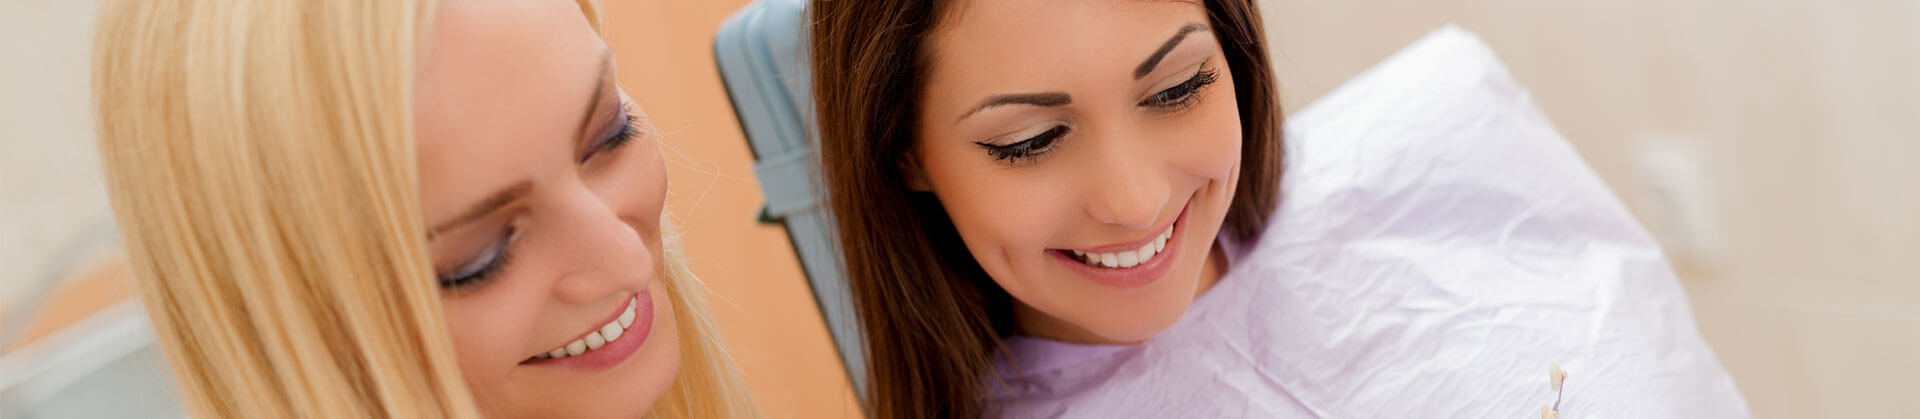 Cropped view of Dental assistant and patient smiling